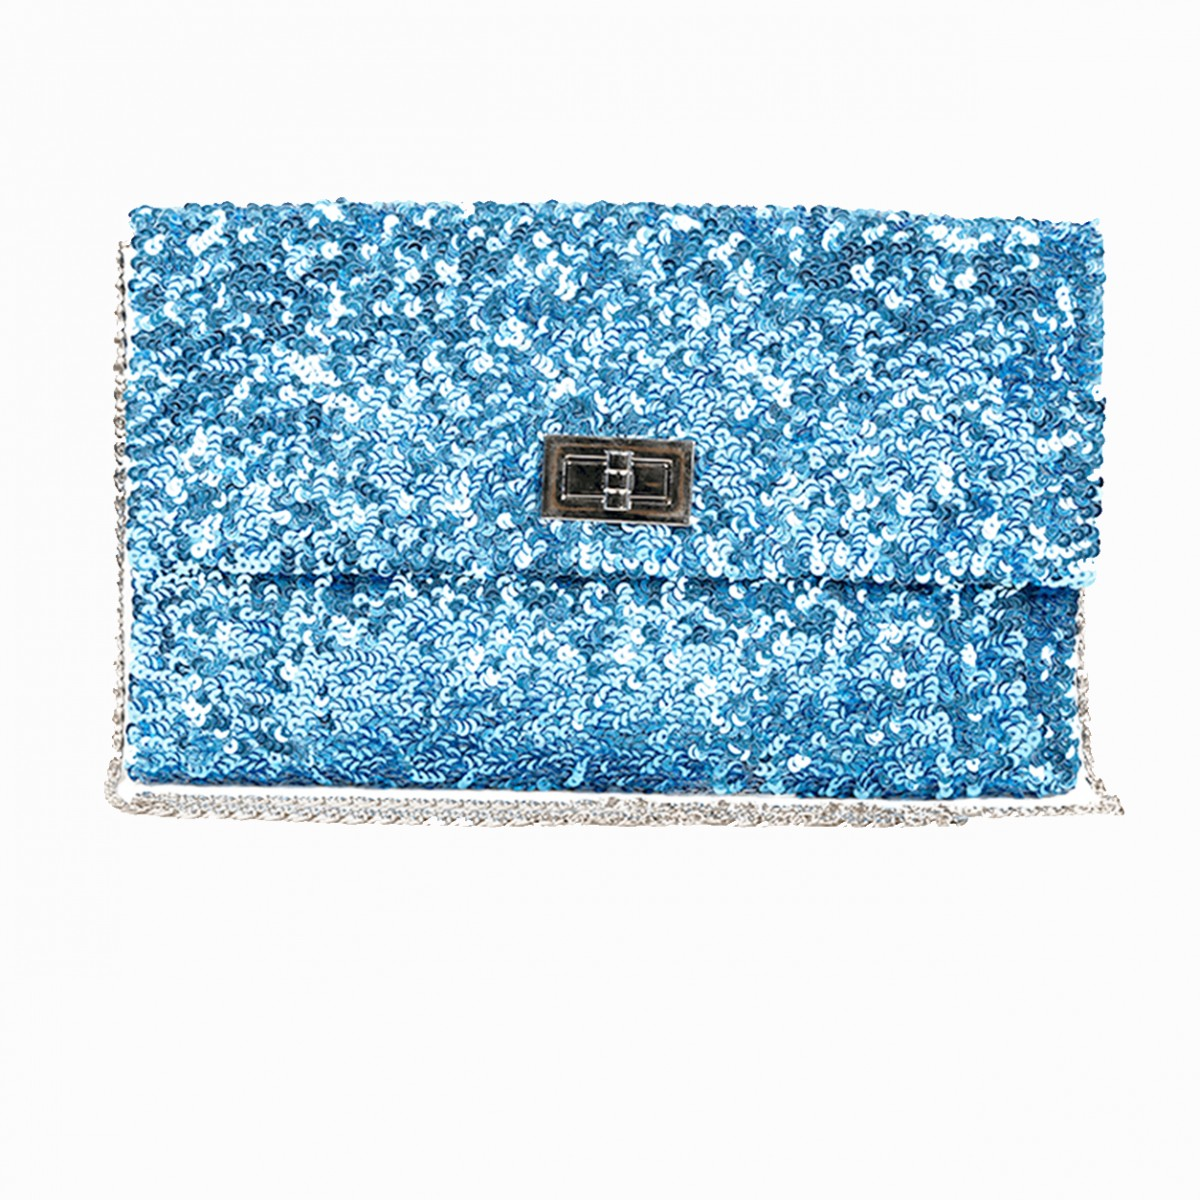 Sky blue sequins crossbody handbag